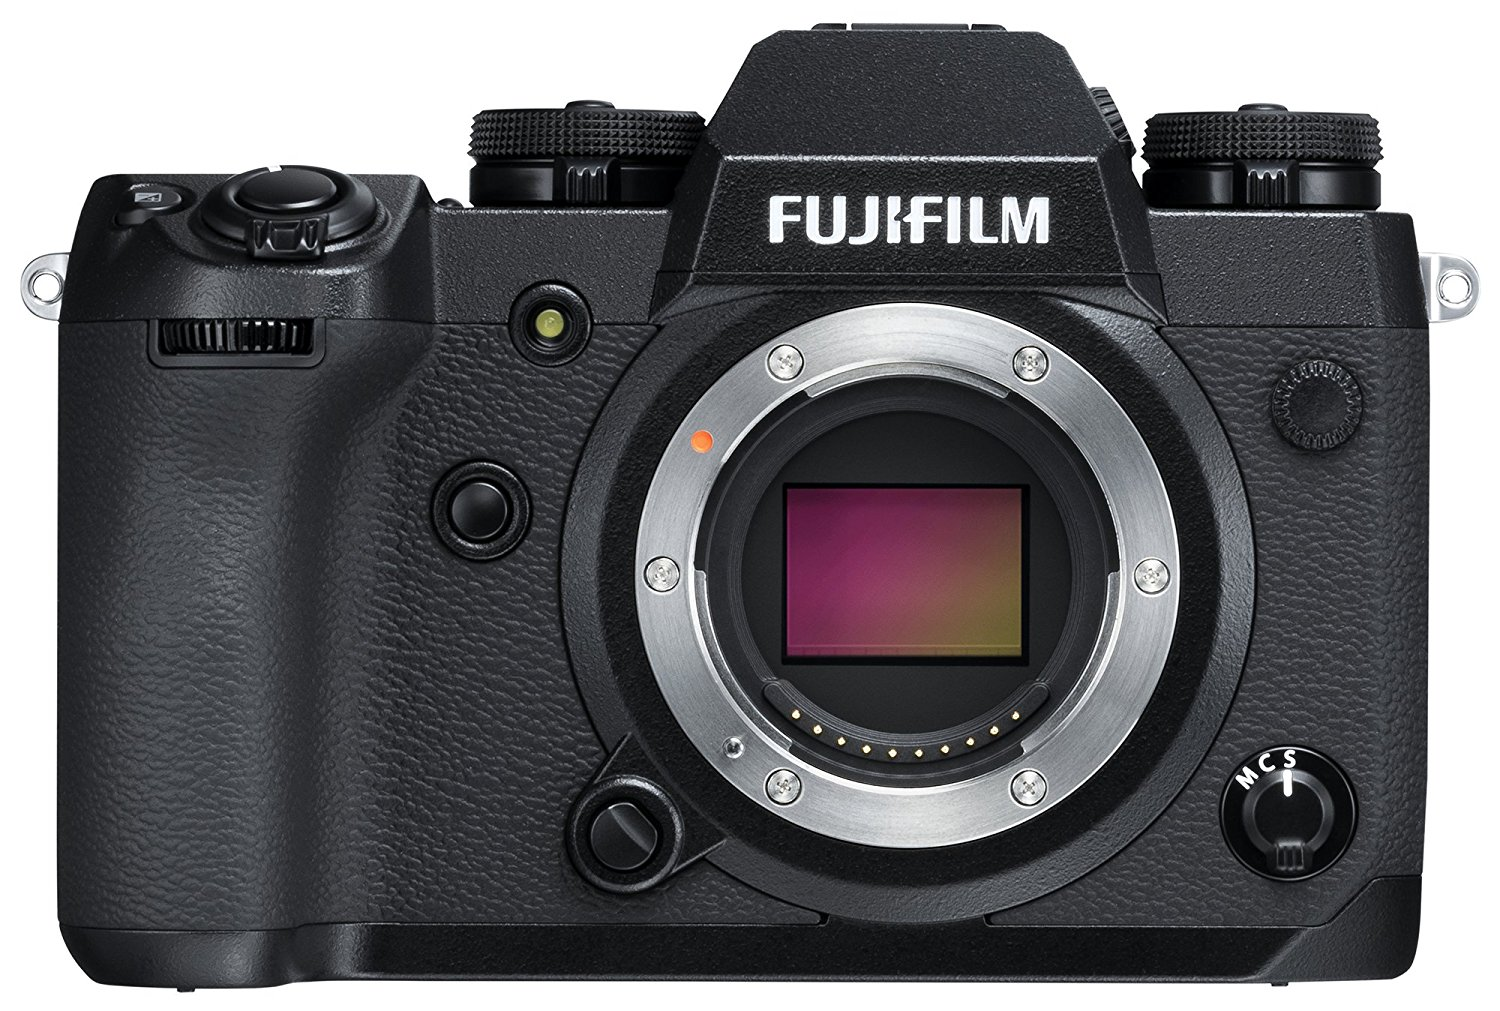 Fuji X-H1 - 4K in 30p? Check. 120fps at 1080p? Check. Flat color profile? Check check check.On top of all that, the X-H1 is the only Fuji camera with 3 to 5-axis image stabilization (depending on the lens), meaning you can comfortably hand-hold this camera during filming without ruining your footage with hand shakes or walking.This alone really can't be understated, and it's reason enough to make it the top choice for your Fuji video camera. But it also shoots at a maximum bitrate of 200Mbps and supports internal f-log recording.If video capability is your top priority and you prefer to shoot without a gimbal or in low light, this is the camera for you.